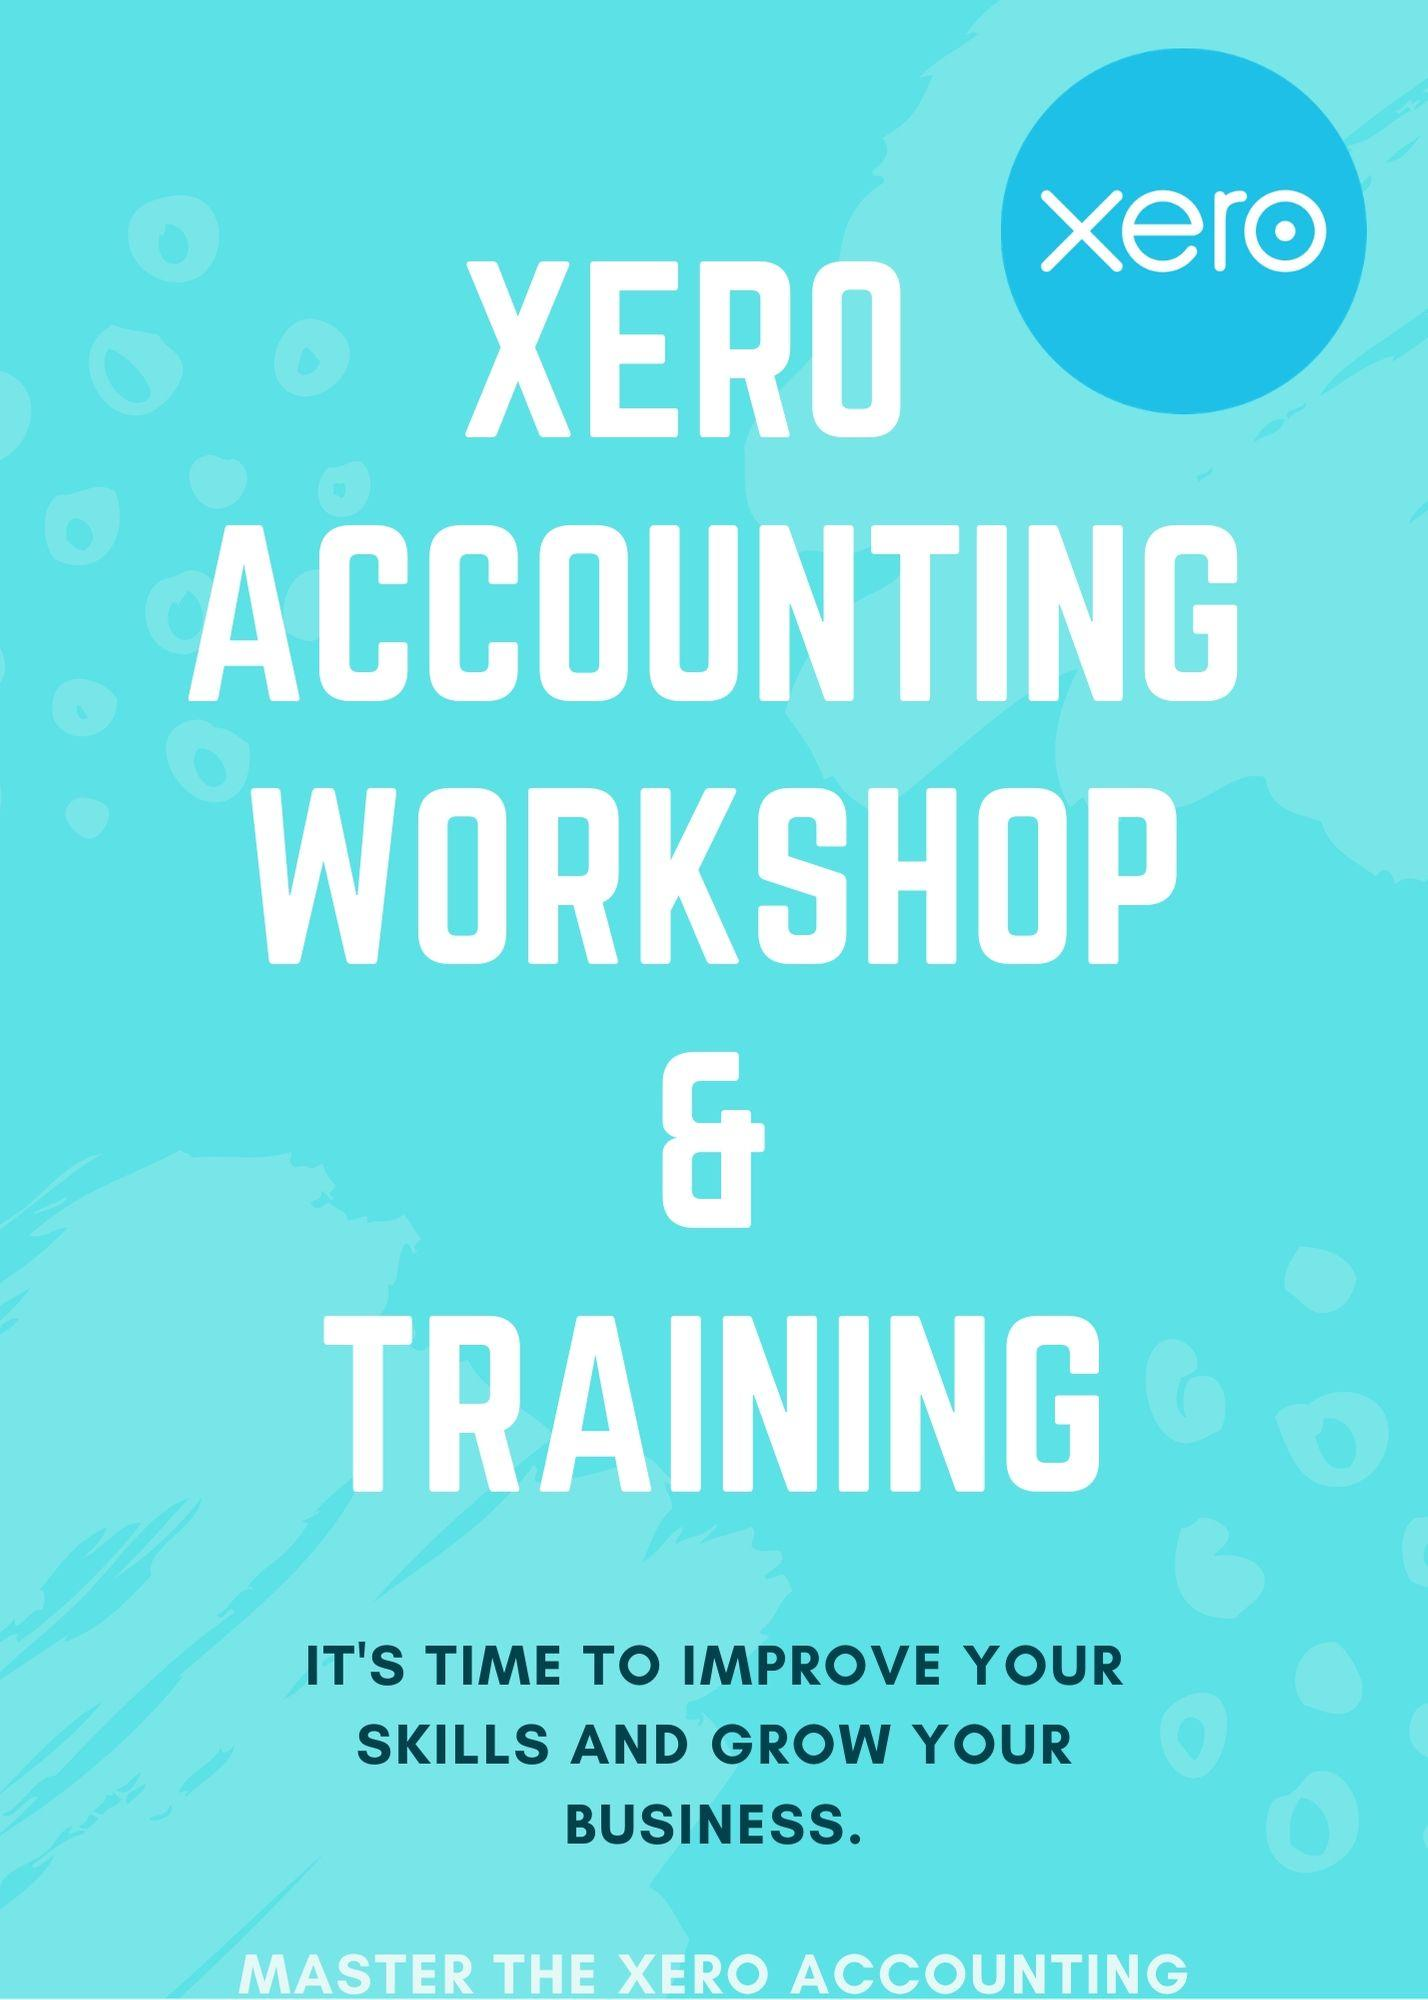 XERO - ACCOUNTING SOFTWARE TRAINING AND WORKSHOP